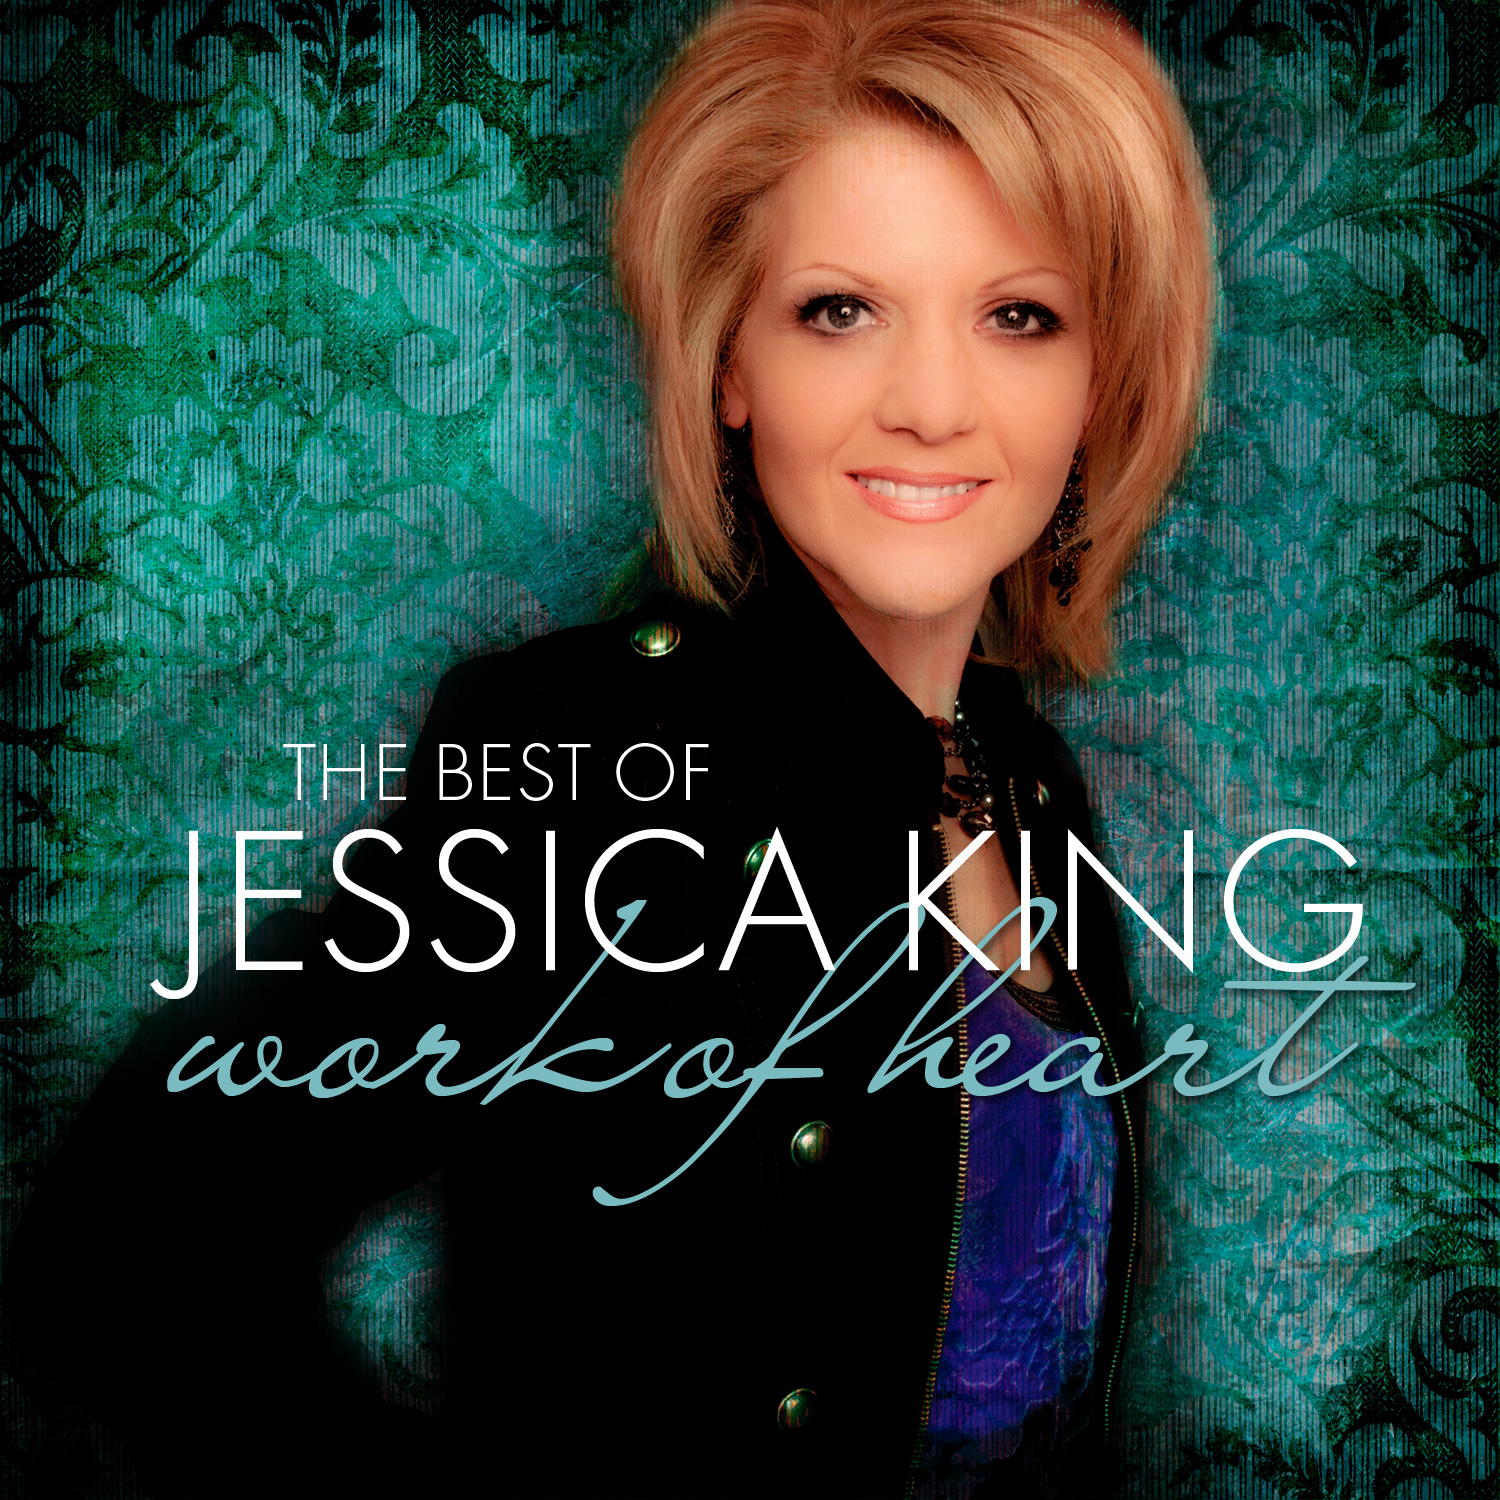 New Release From Jessica King,